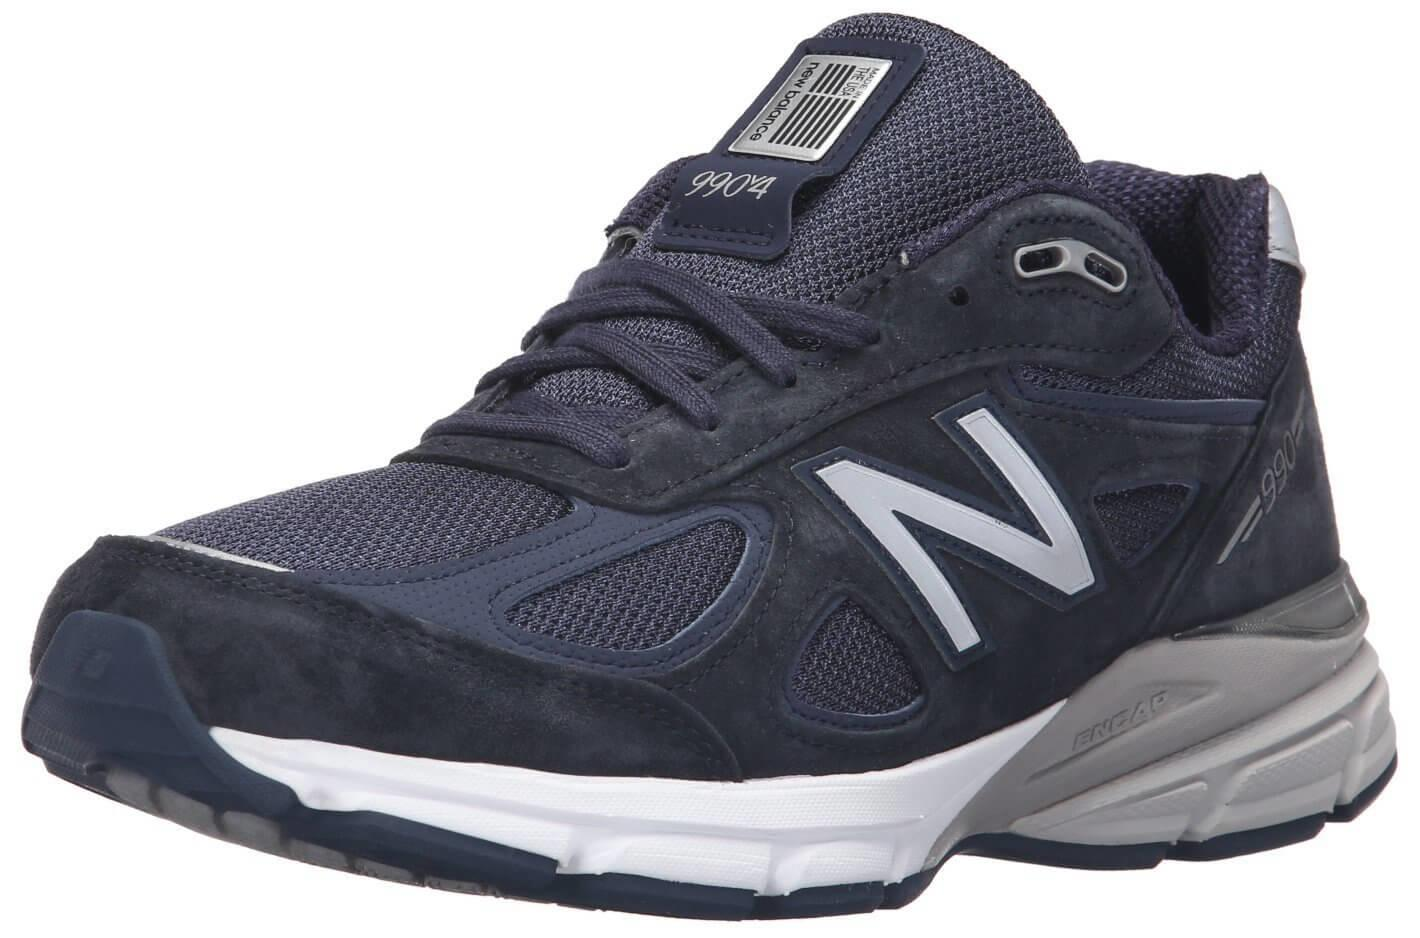 Men's Cross-Training Shoes. Take your cross-training to the next level with sturdy and responsive New Balance shoes for men. Our high-intensity training shoes for men can help you surpass even the most ambitious fitness goals.